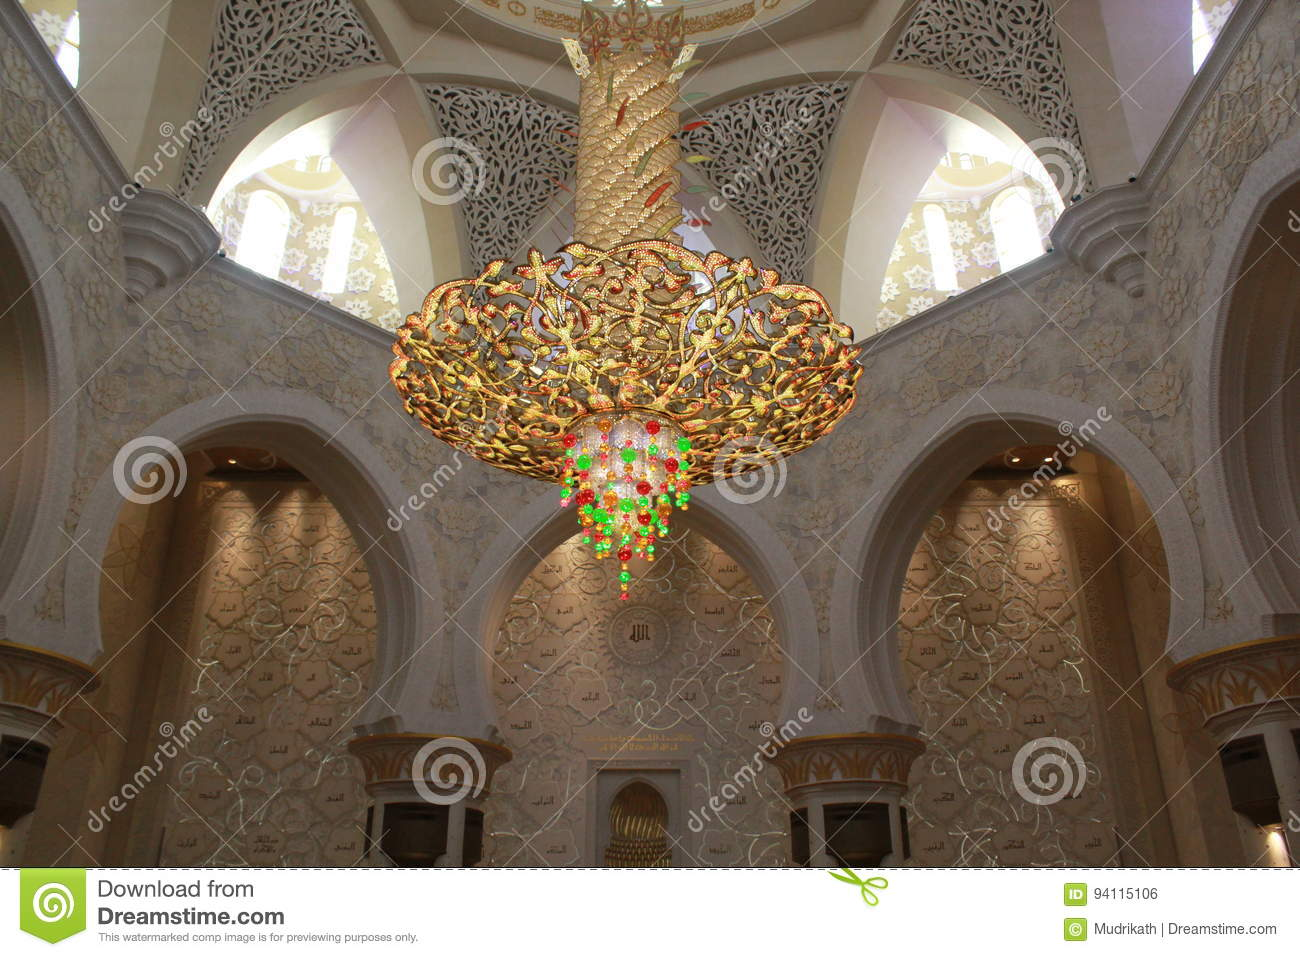 INTERNAL LIGHTING EQUIPMENT Inside The Largest Mosque Of UAE, SHEIK ZAYED  GRAND MOSQUE Located In